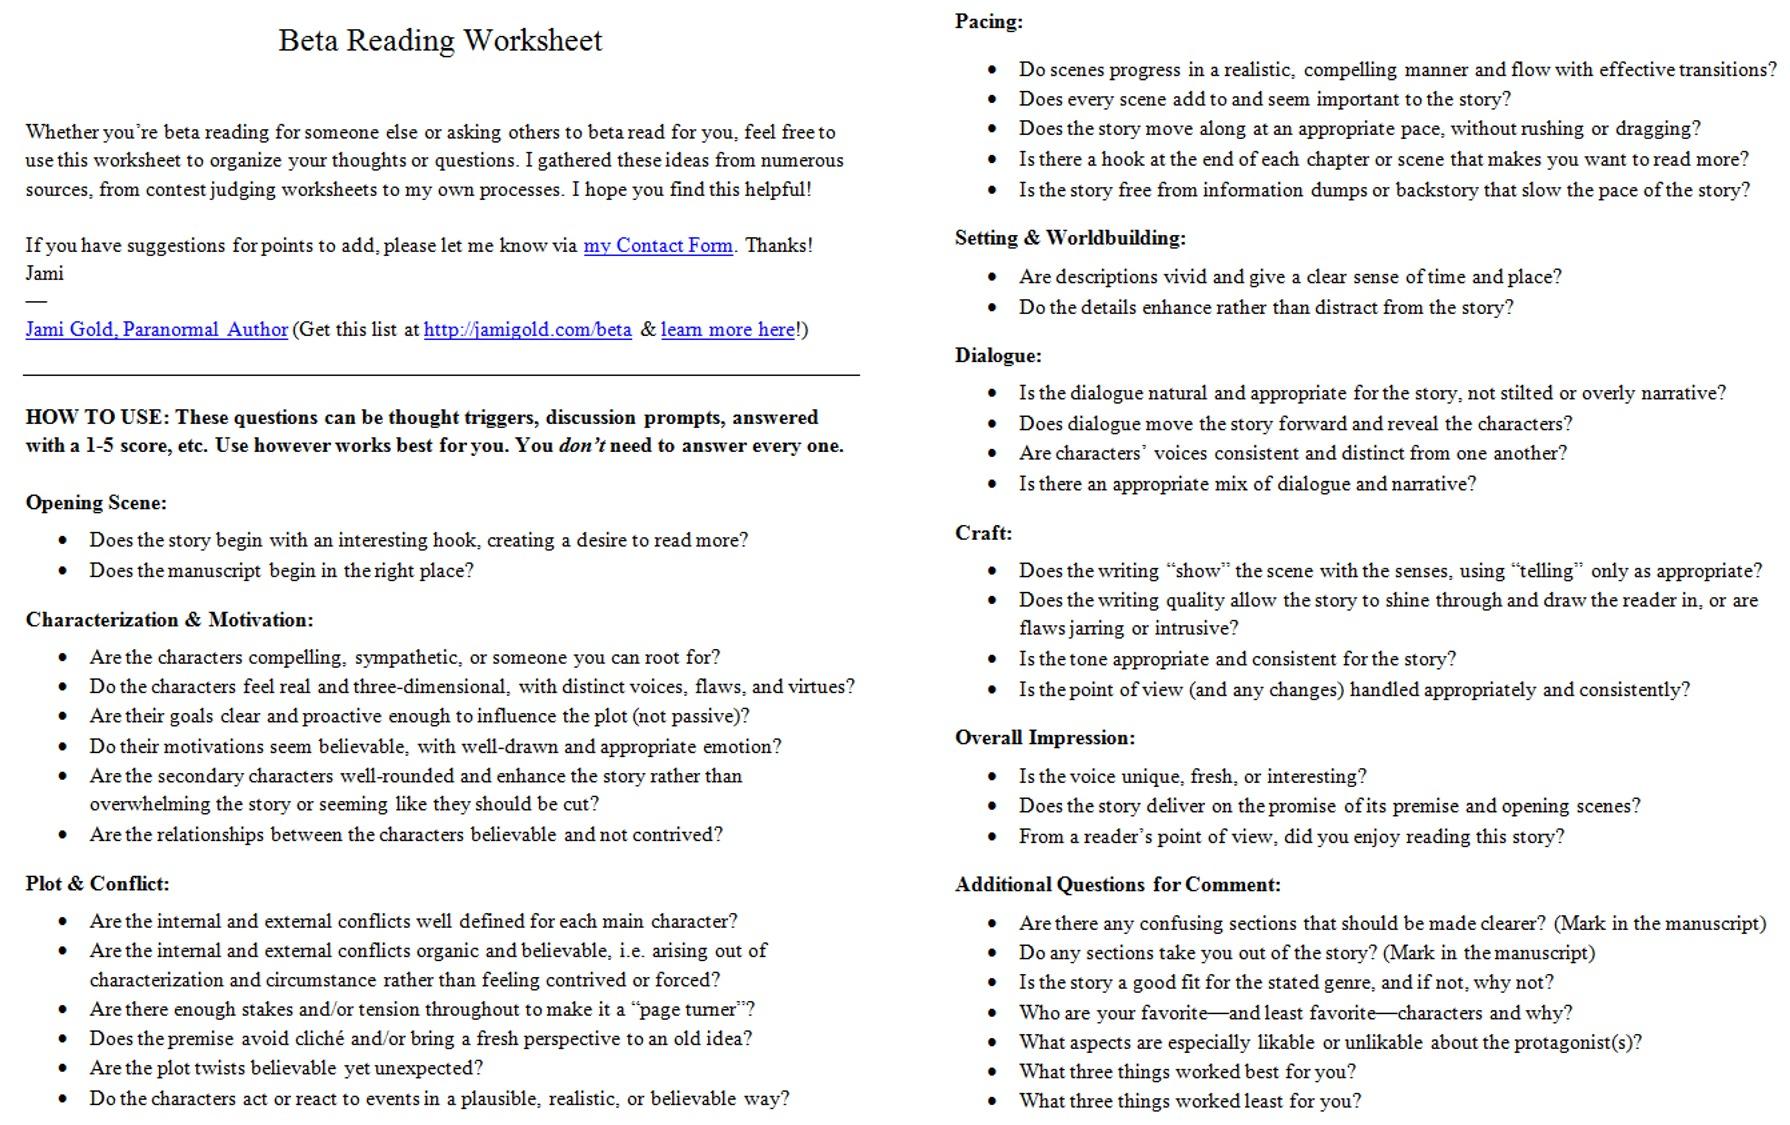 Proatmealus  Inspiring Worksheets For Writers  Jami Gold Paranormal Author With Outstanding Screen Shot Of The Twopage Beta Reading Worksheet With Amazing Feeling Words Worksheet Also Handwriting Worksheets For Third Grade In Addition Compound Complex Simple Sentences Worksheets And Dr Who Worksheets As Well As Action Words Worksheets For Grade  Additionally Following Directions Coloring Worksheet From Jamigoldcom With Proatmealus  Outstanding Worksheets For Writers  Jami Gold Paranormal Author With Amazing Screen Shot Of The Twopage Beta Reading Worksheet And Inspiring Feeling Words Worksheet Also Handwriting Worksheets For Third Grade In Addition Compound Complex Simple Sentences Worksheets From Jamigoldcom